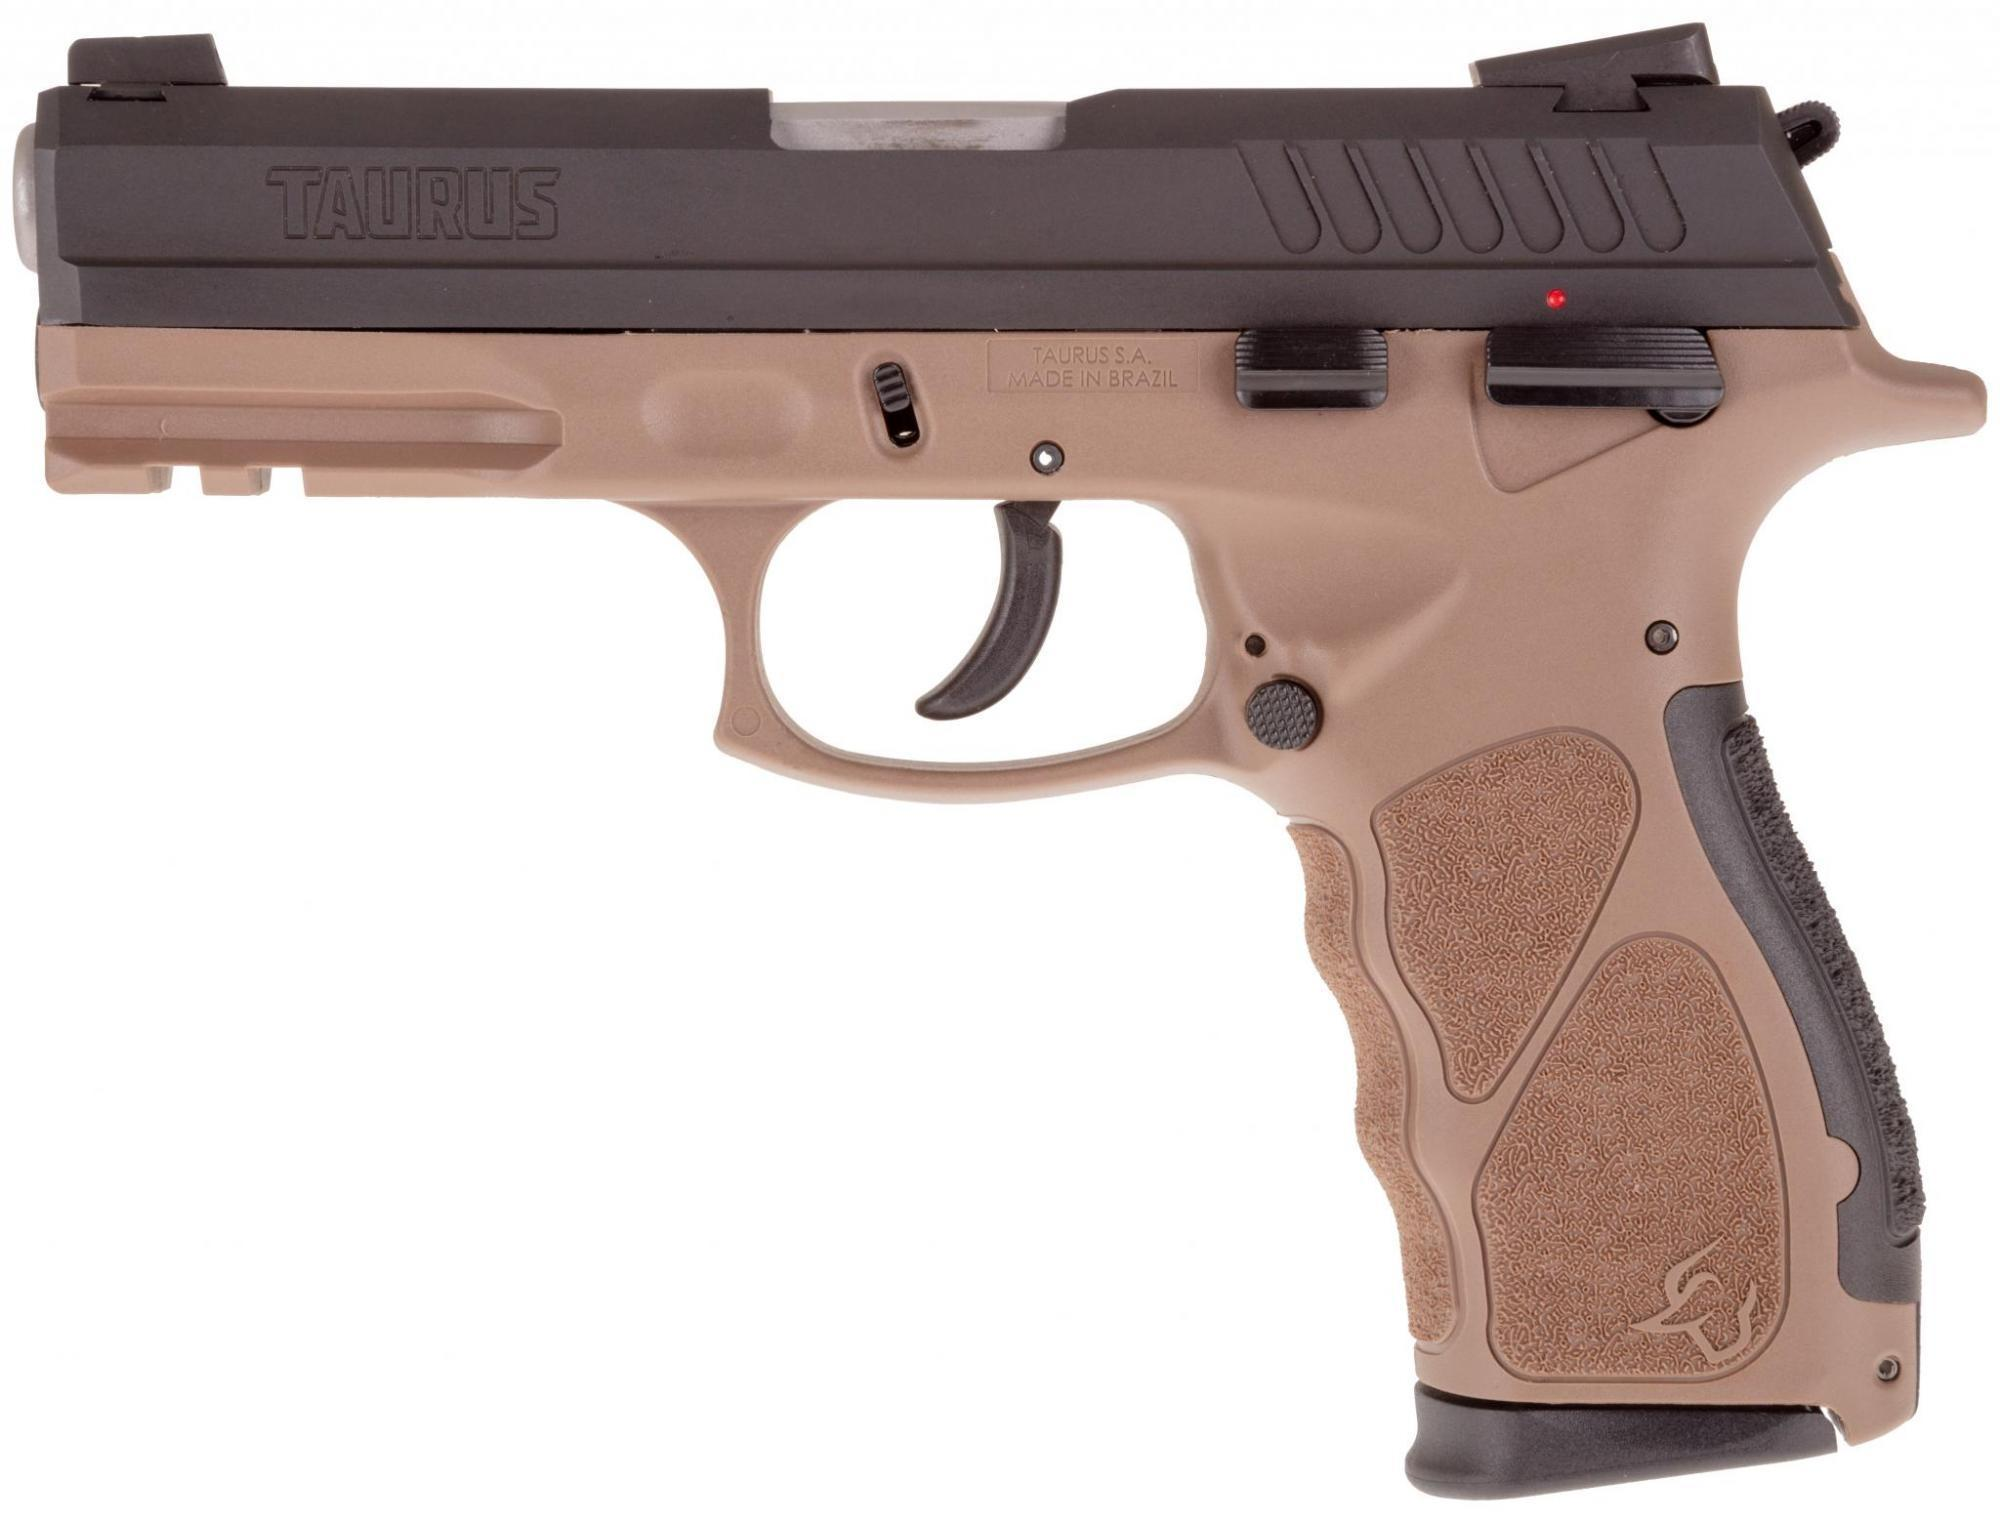 TH9 9MM BLK/BROWN 17+1 SAFETY - 1-TH9041B| ADJ SIGHTS | 2 MAGS